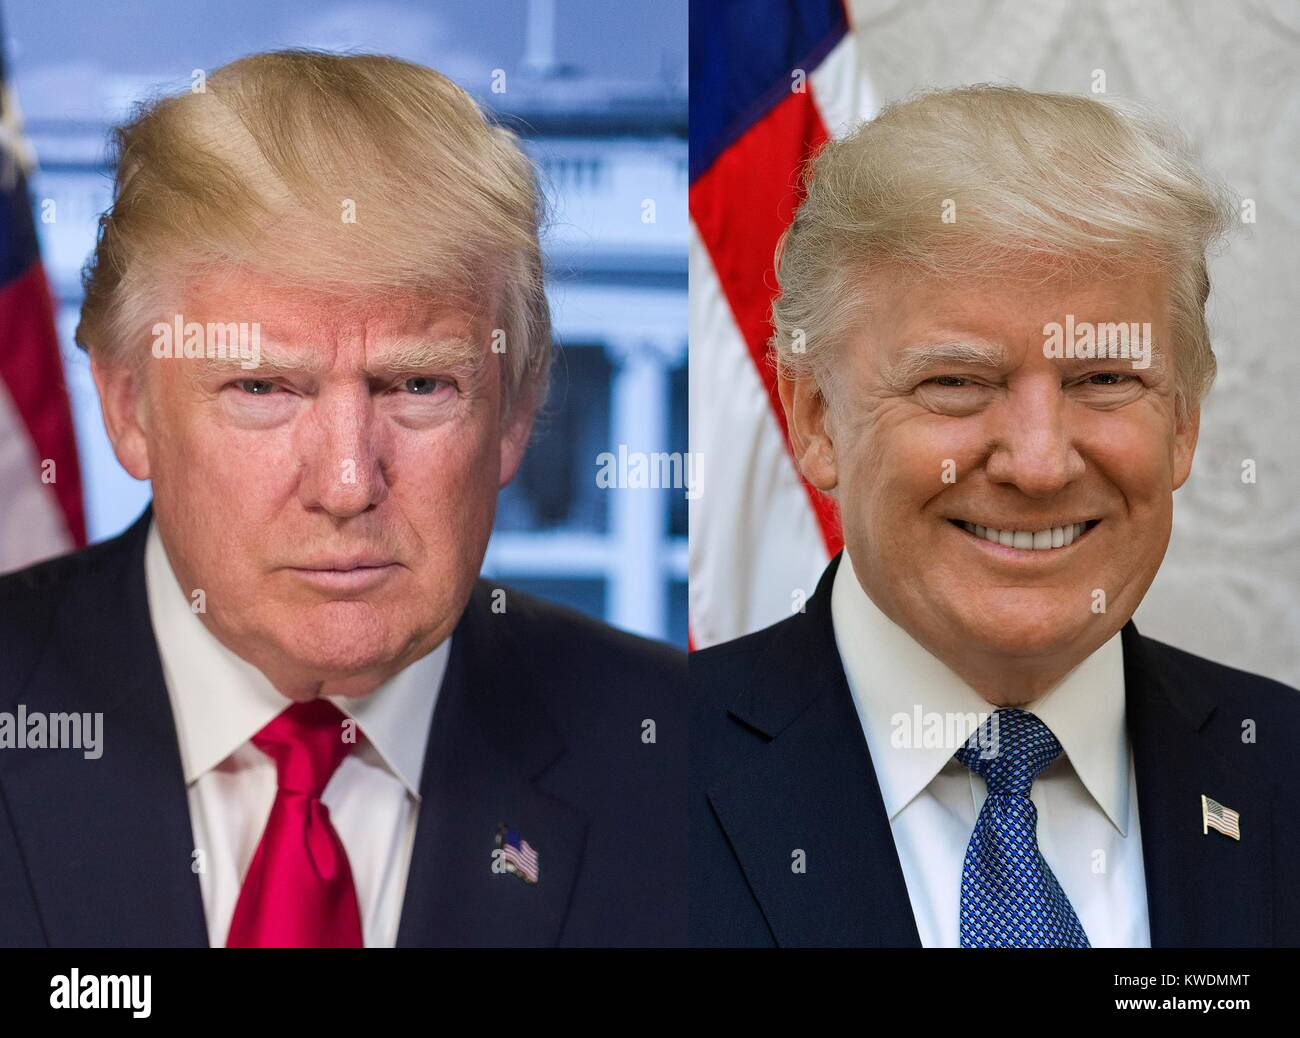 Contrasting portraits of President Donald Trump used by the White House in 2017. Image on left was taken in Dec. - Stock Image